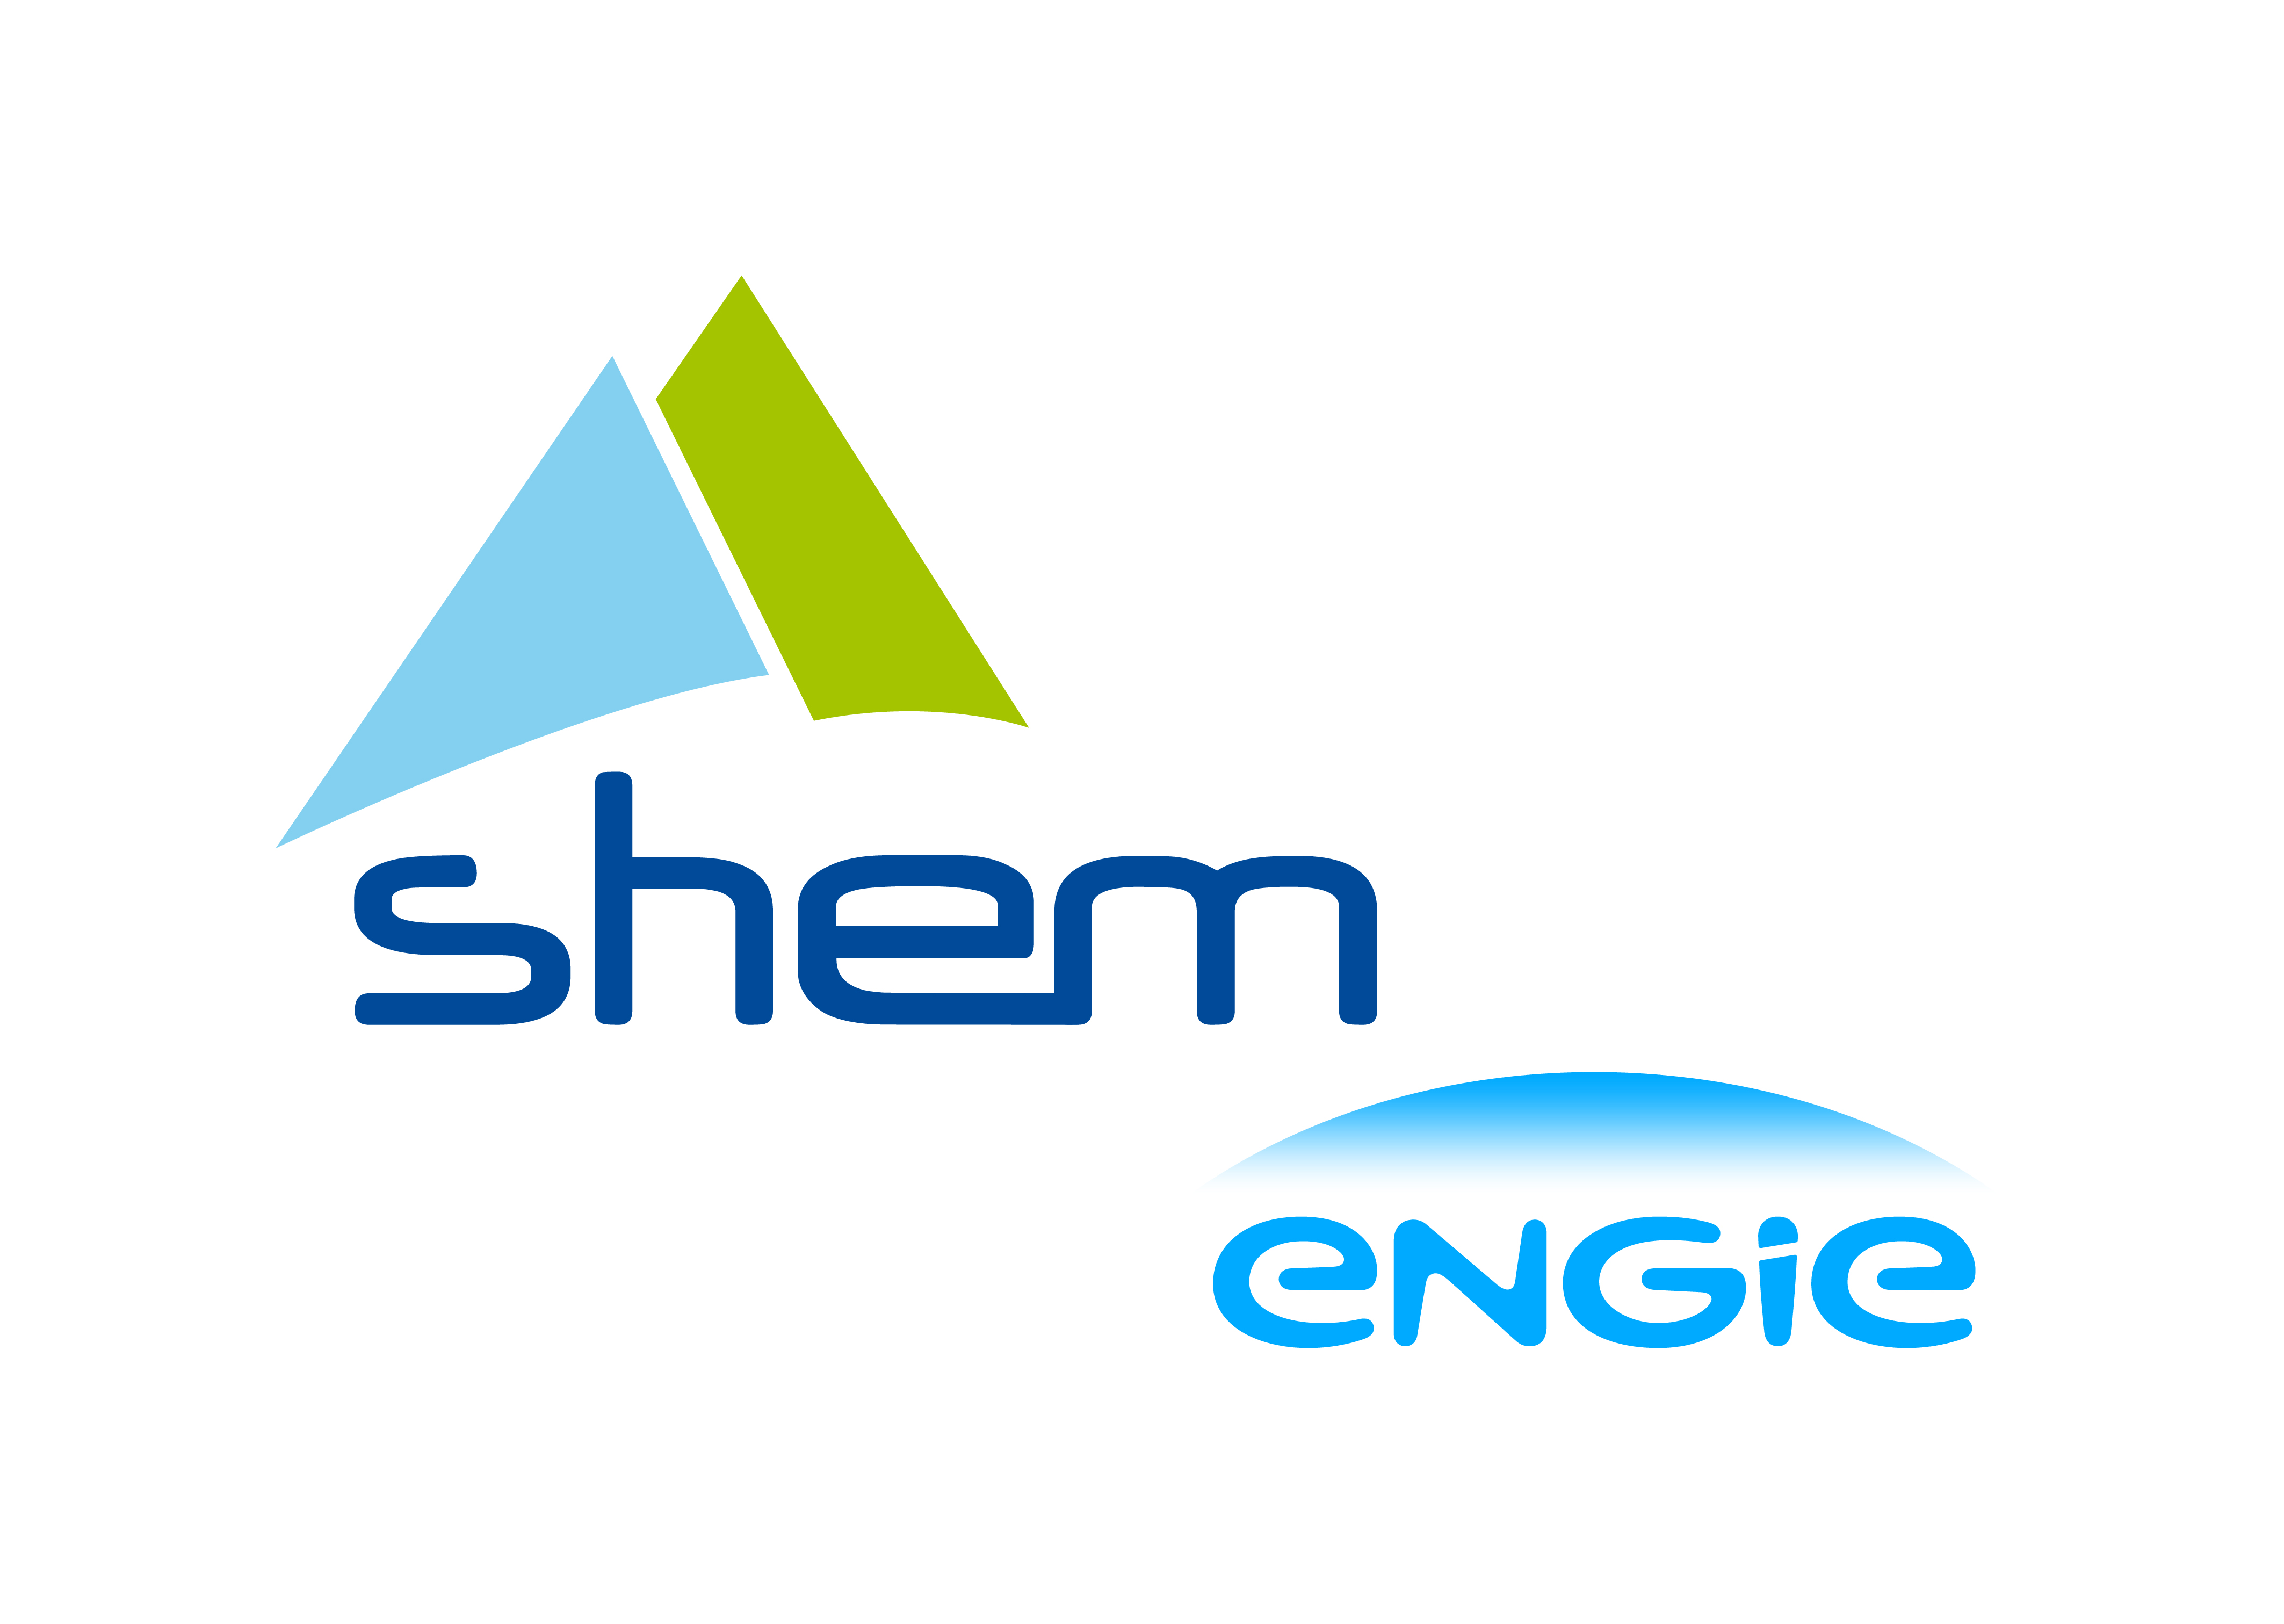 ENGIE shem gradient COLOR 01 RGB